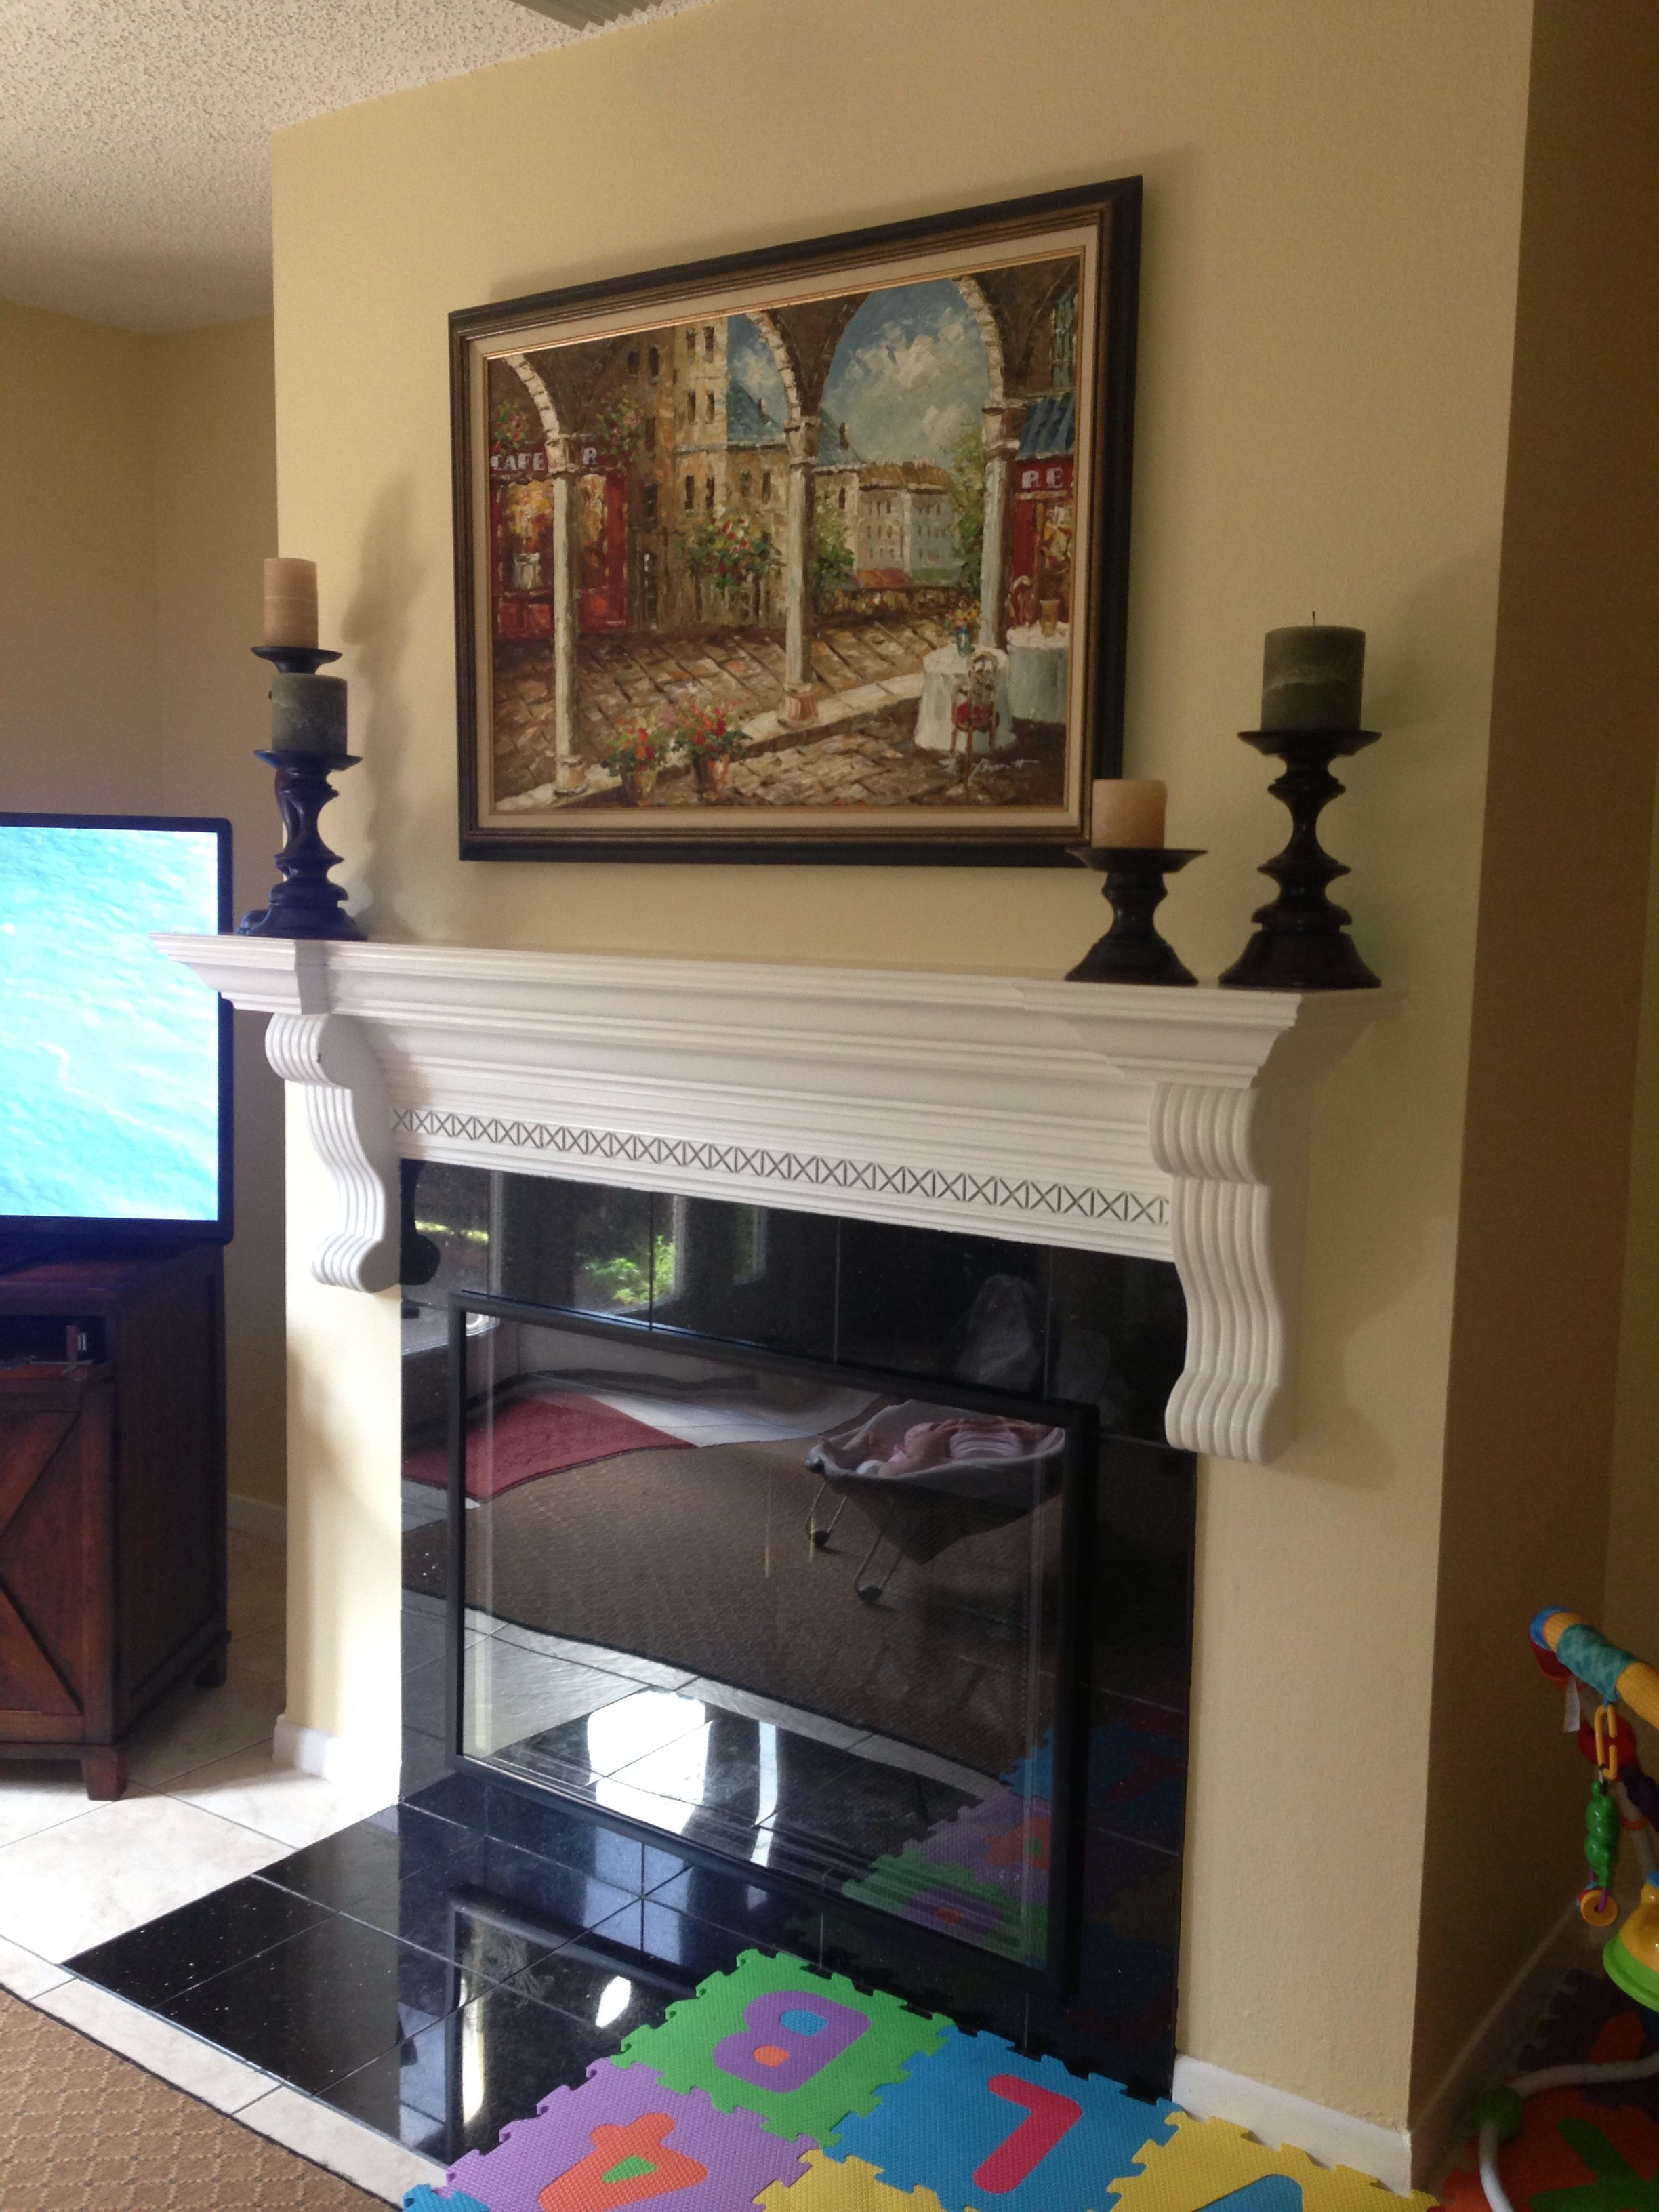 diy kid proofing fireplace screencover using inexpensive poster frame from target mounted with